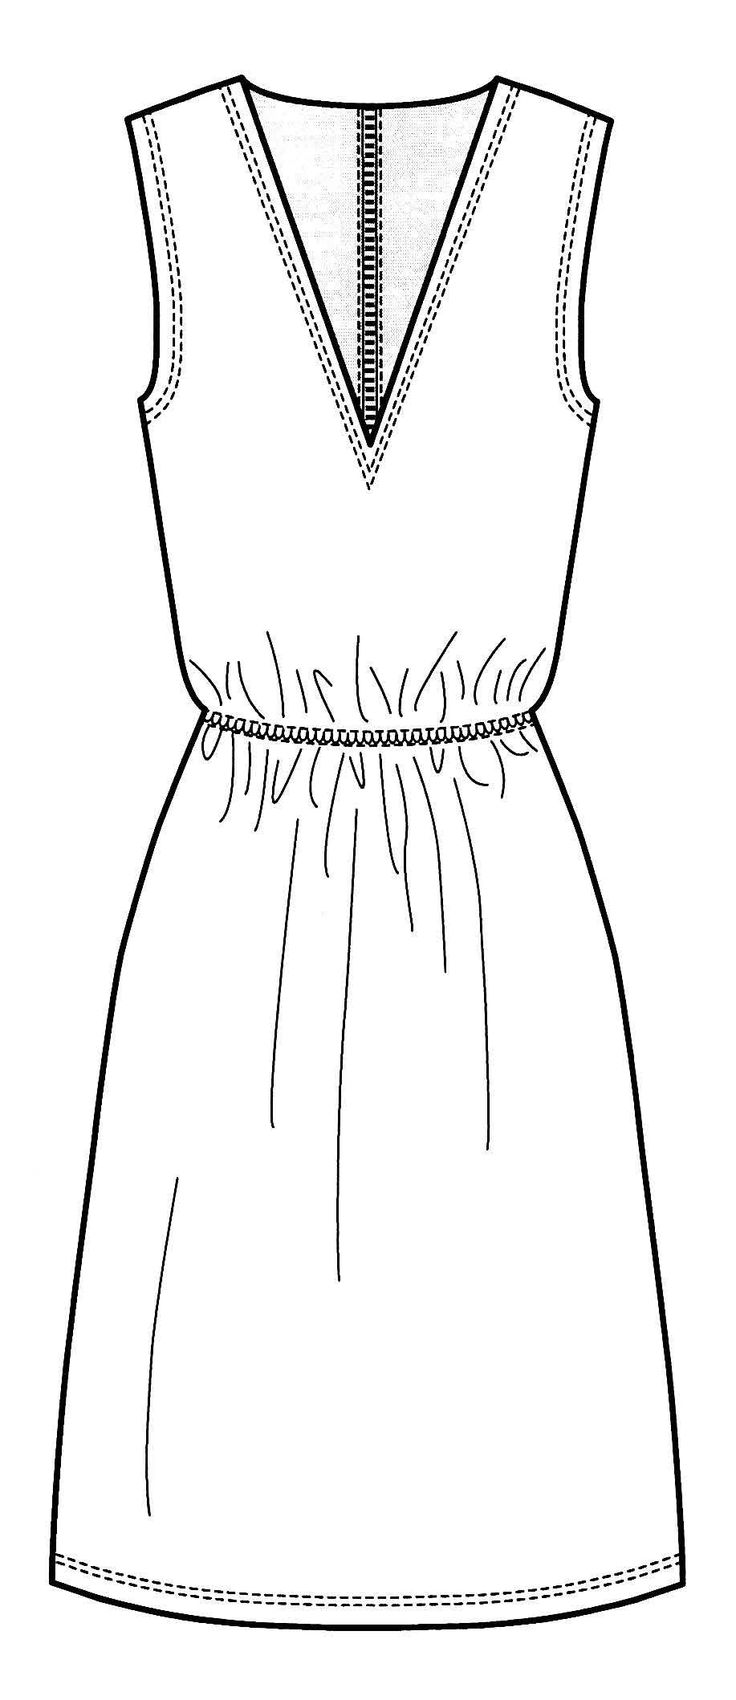 Line Drawing Dress : Best dress line drawings images on pinterest fashion